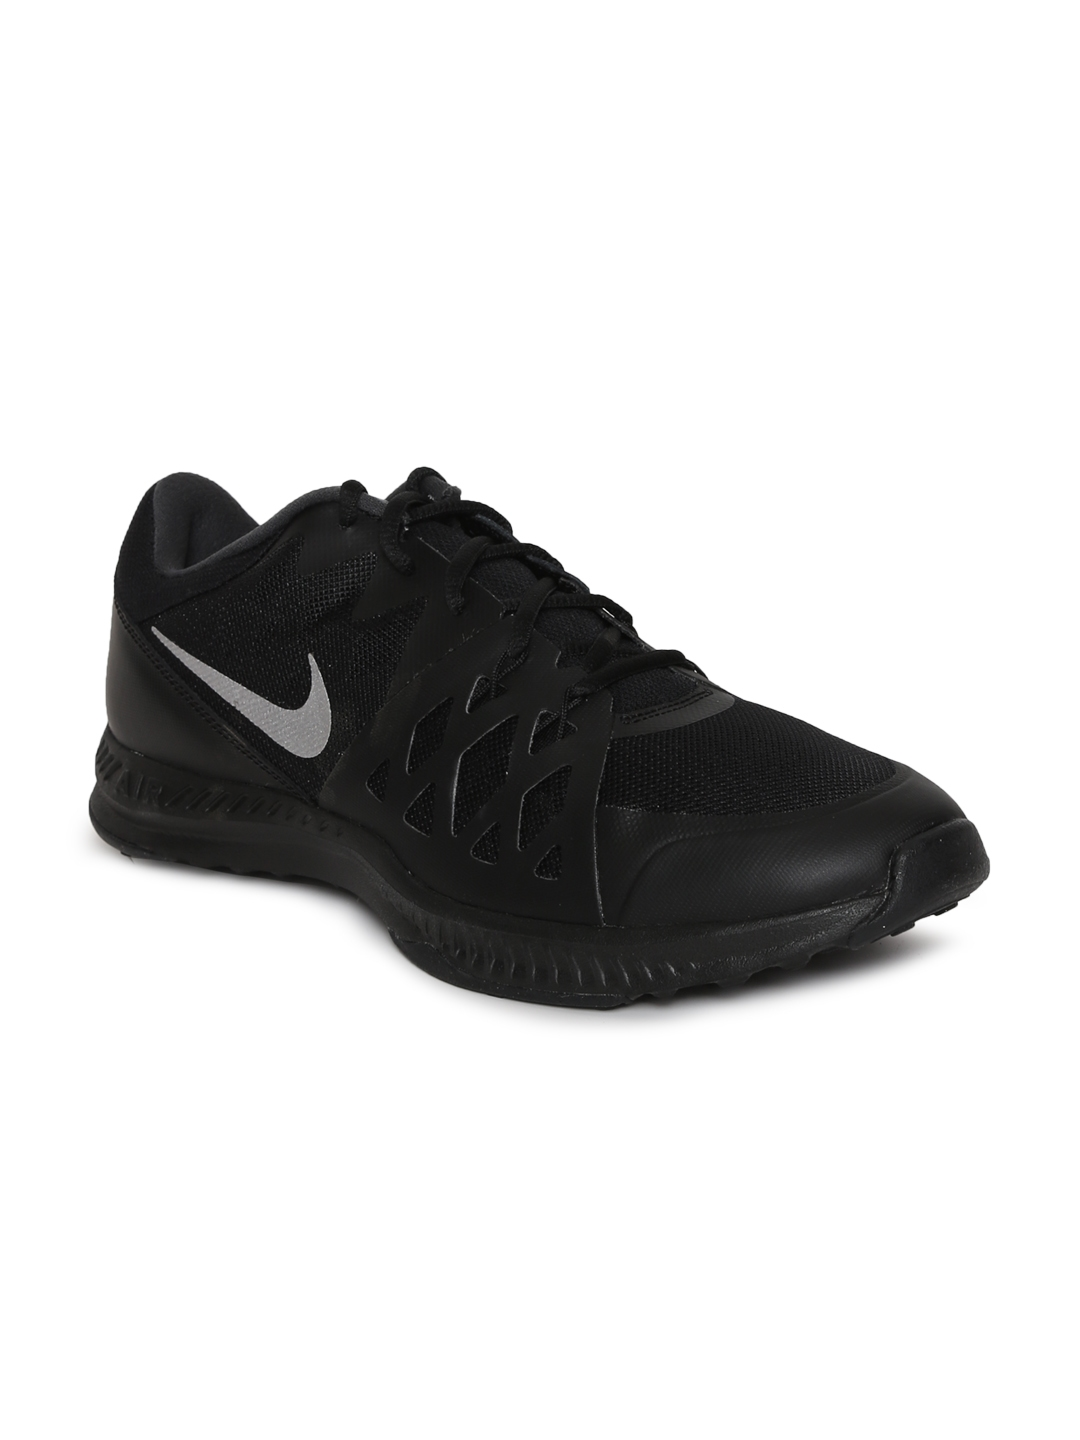 adf91113d1db Buy Nike Men Black AIR EPIC SPEED TR II Leather Training Shoes ...